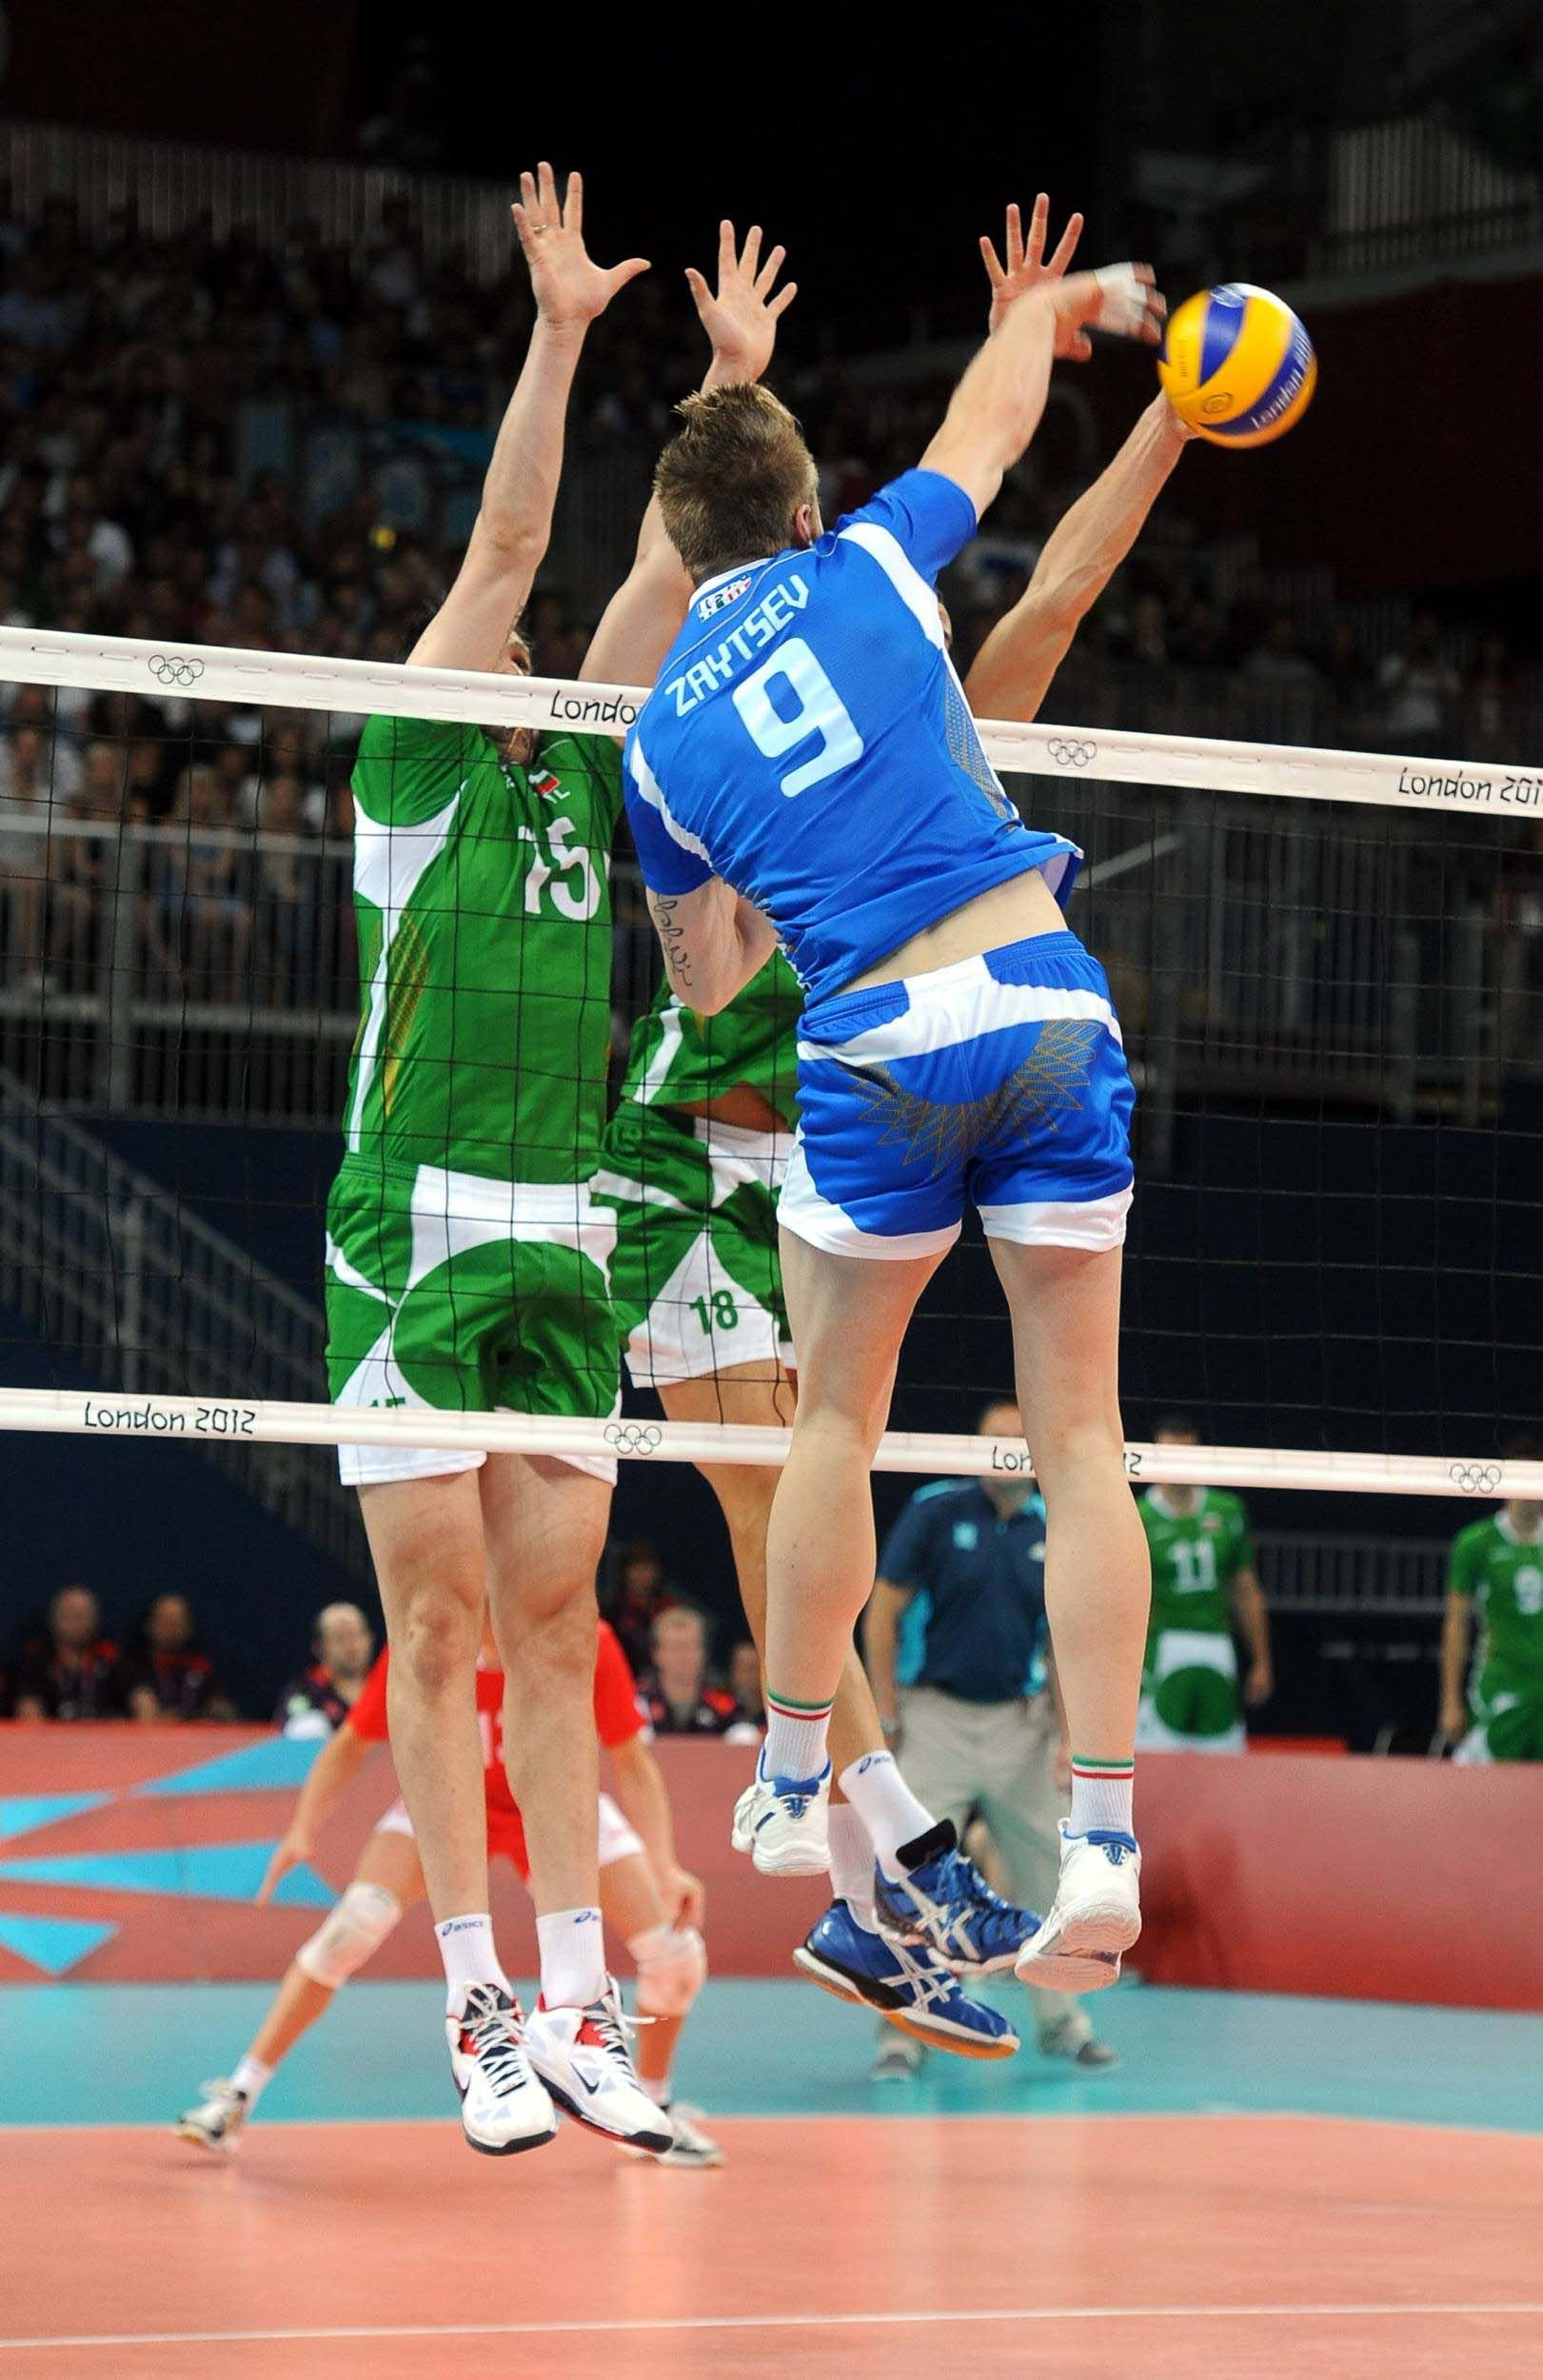 Italy S Ivan Zaytsev Spikes In The Bronze Medal Match Against Bulgaria During The 2012 London Olympics Volleyball Wallpaper Volleyball Olympics